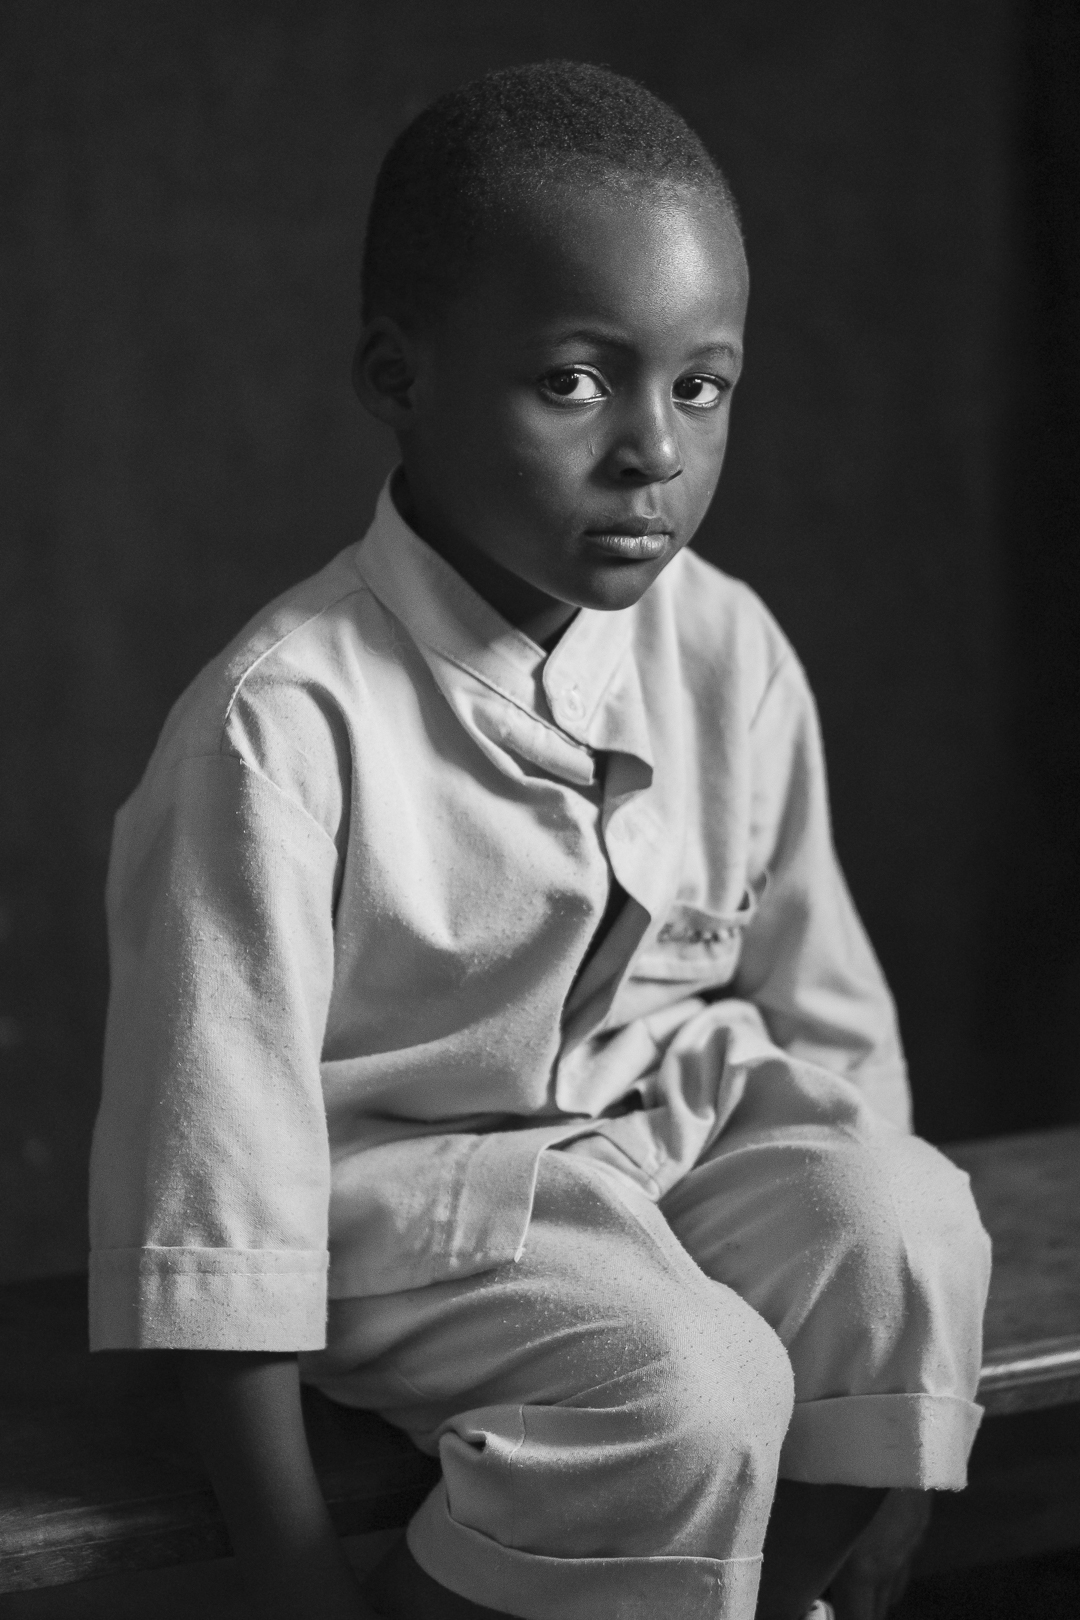 Frank | 5 years old